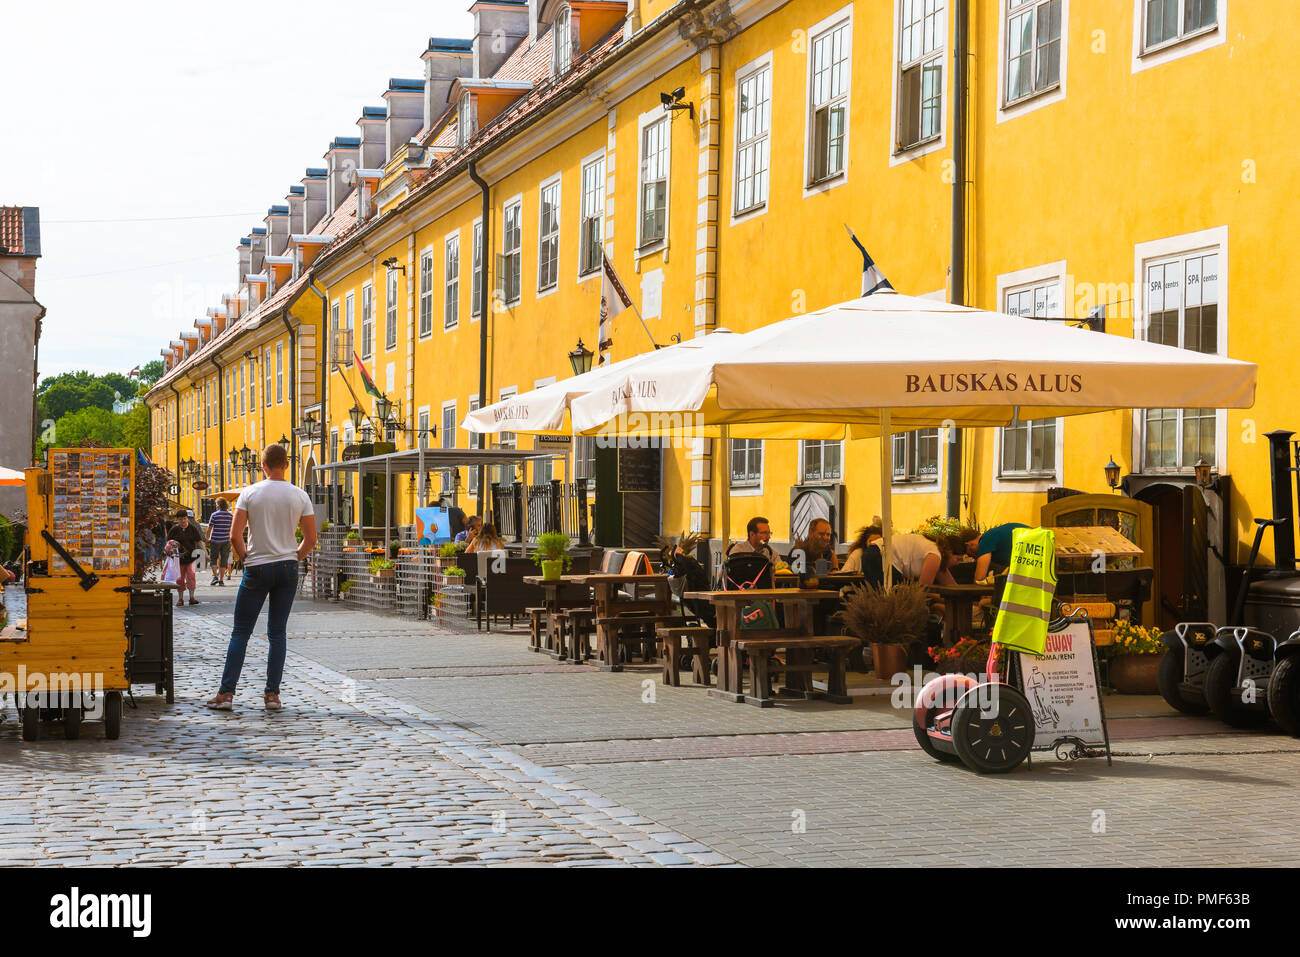 View of people at terrace cafe tables alongside Jacob's Barracks in Tornu Iela, a historic street in the medieval center of Old Riga, Latvia. - Stock Image